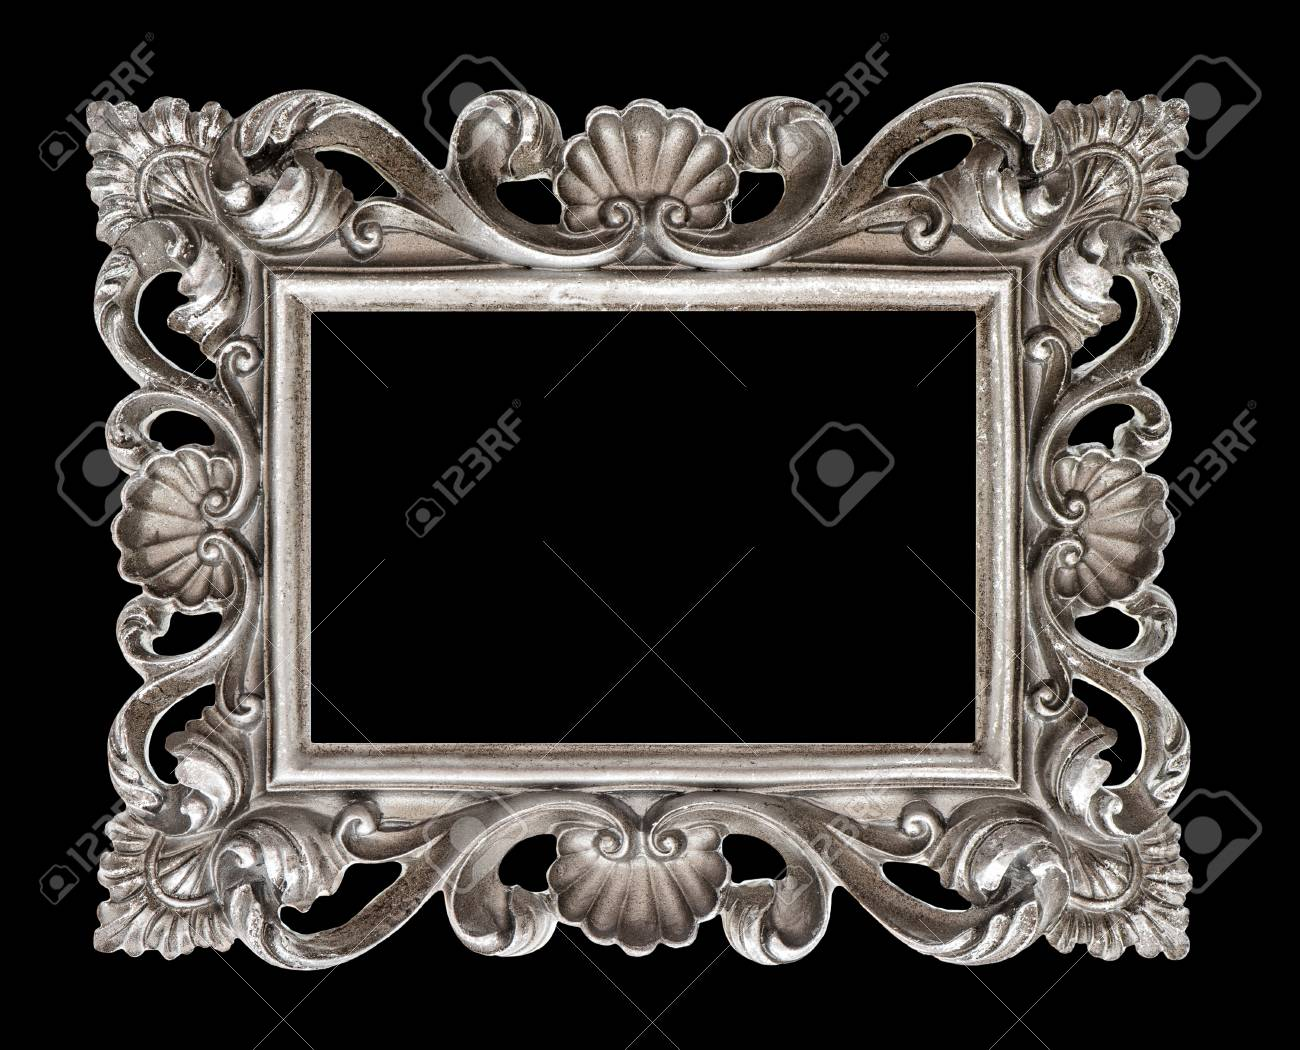 stock photo vintage silver baroque style picture frame isolated over black background